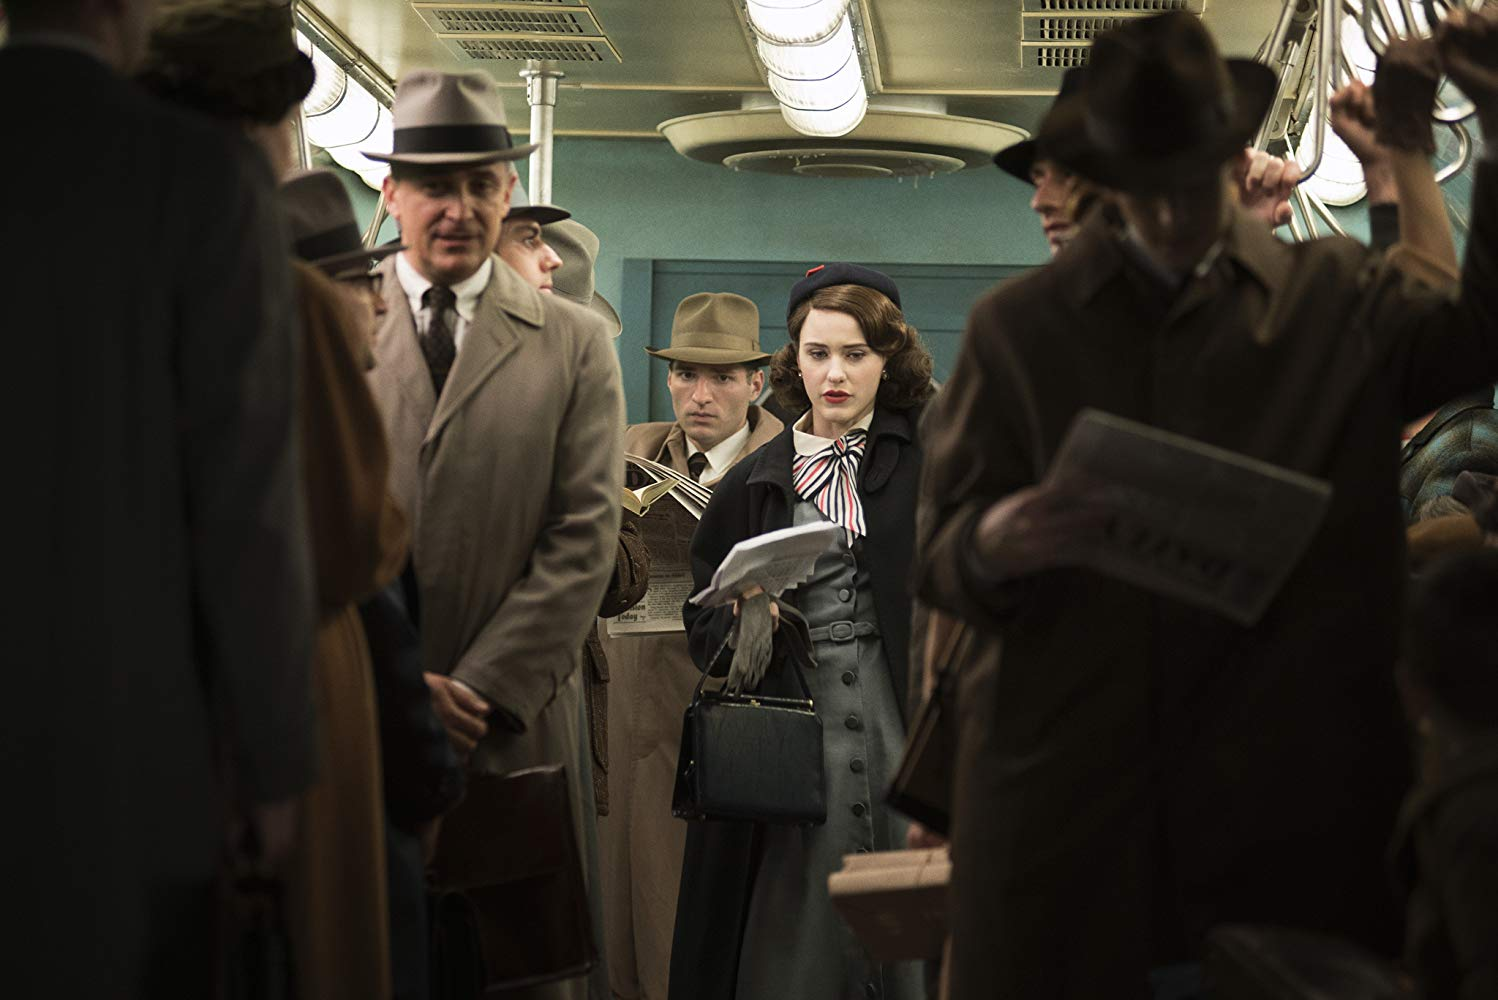 NYC Film Locations Guide to The Marvelous Mrs. Maisel subway